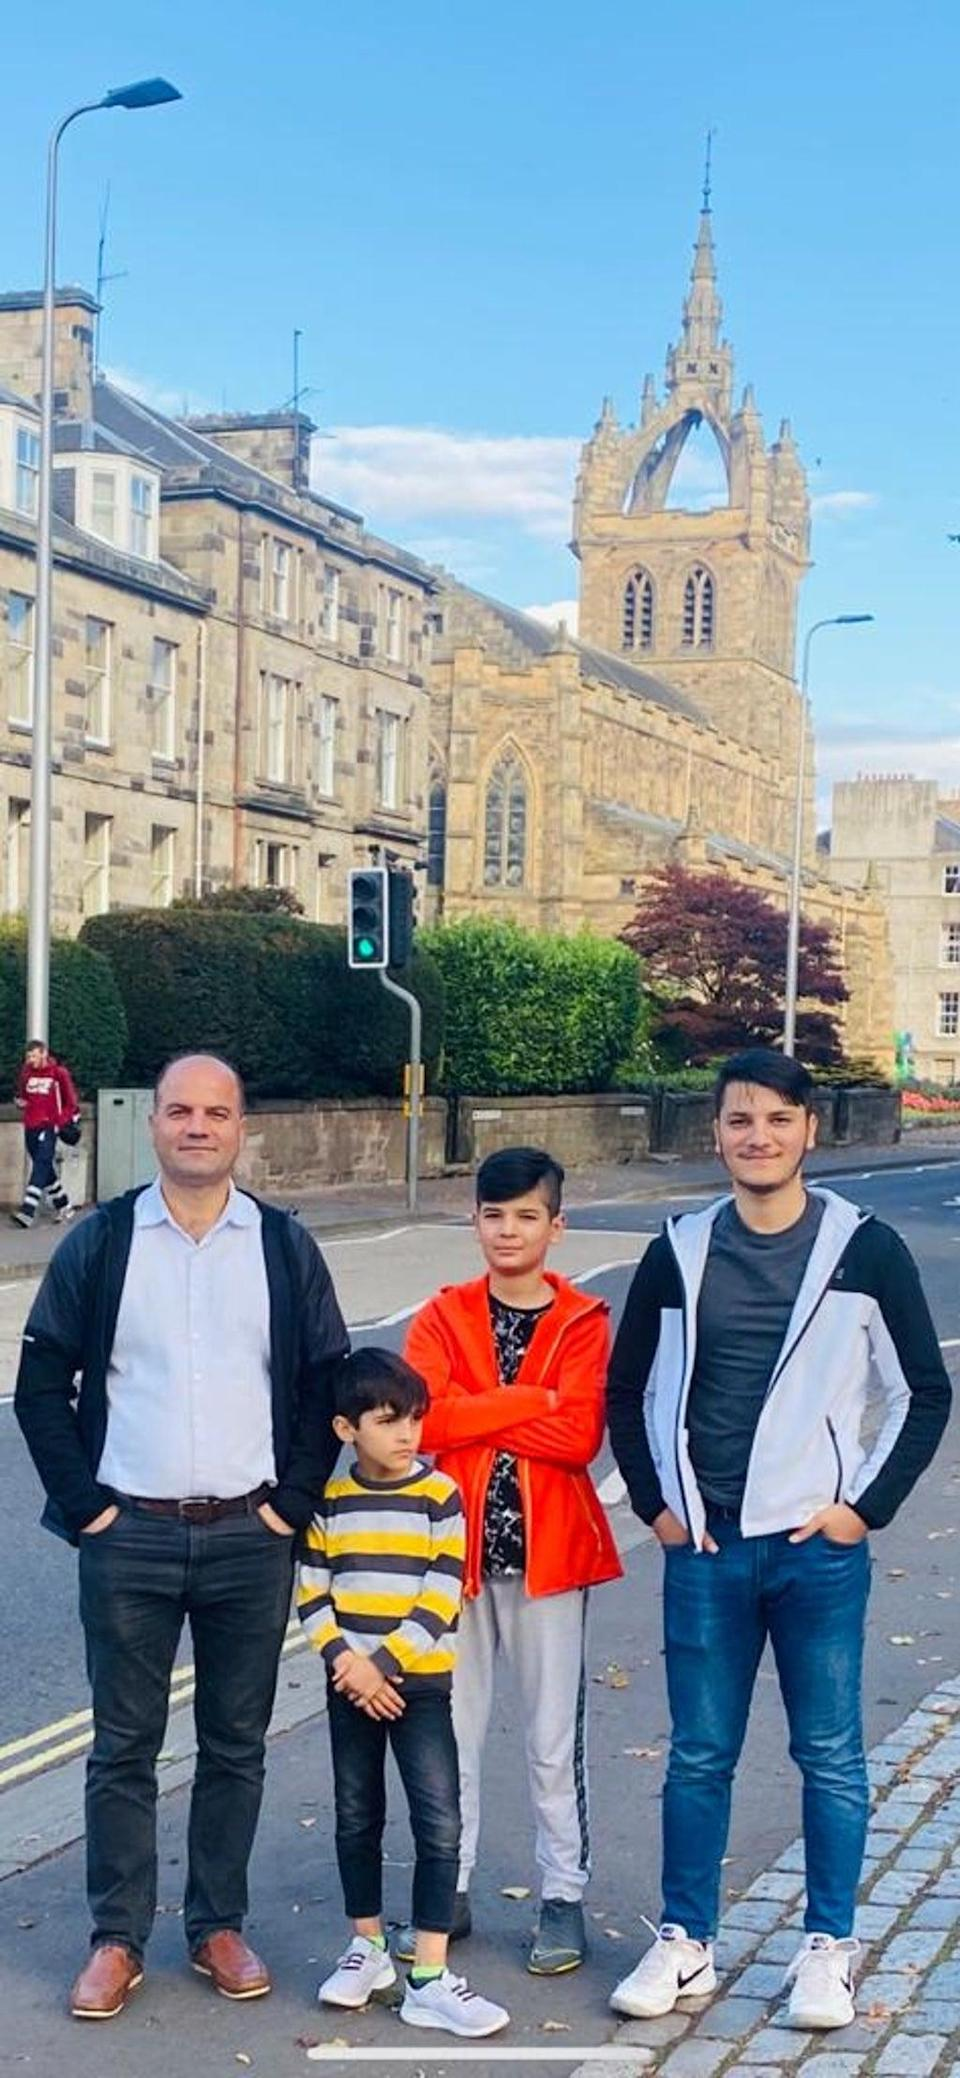 Sayed and his sons in their new home in Perth, Scotland (Sayed Hashemi)